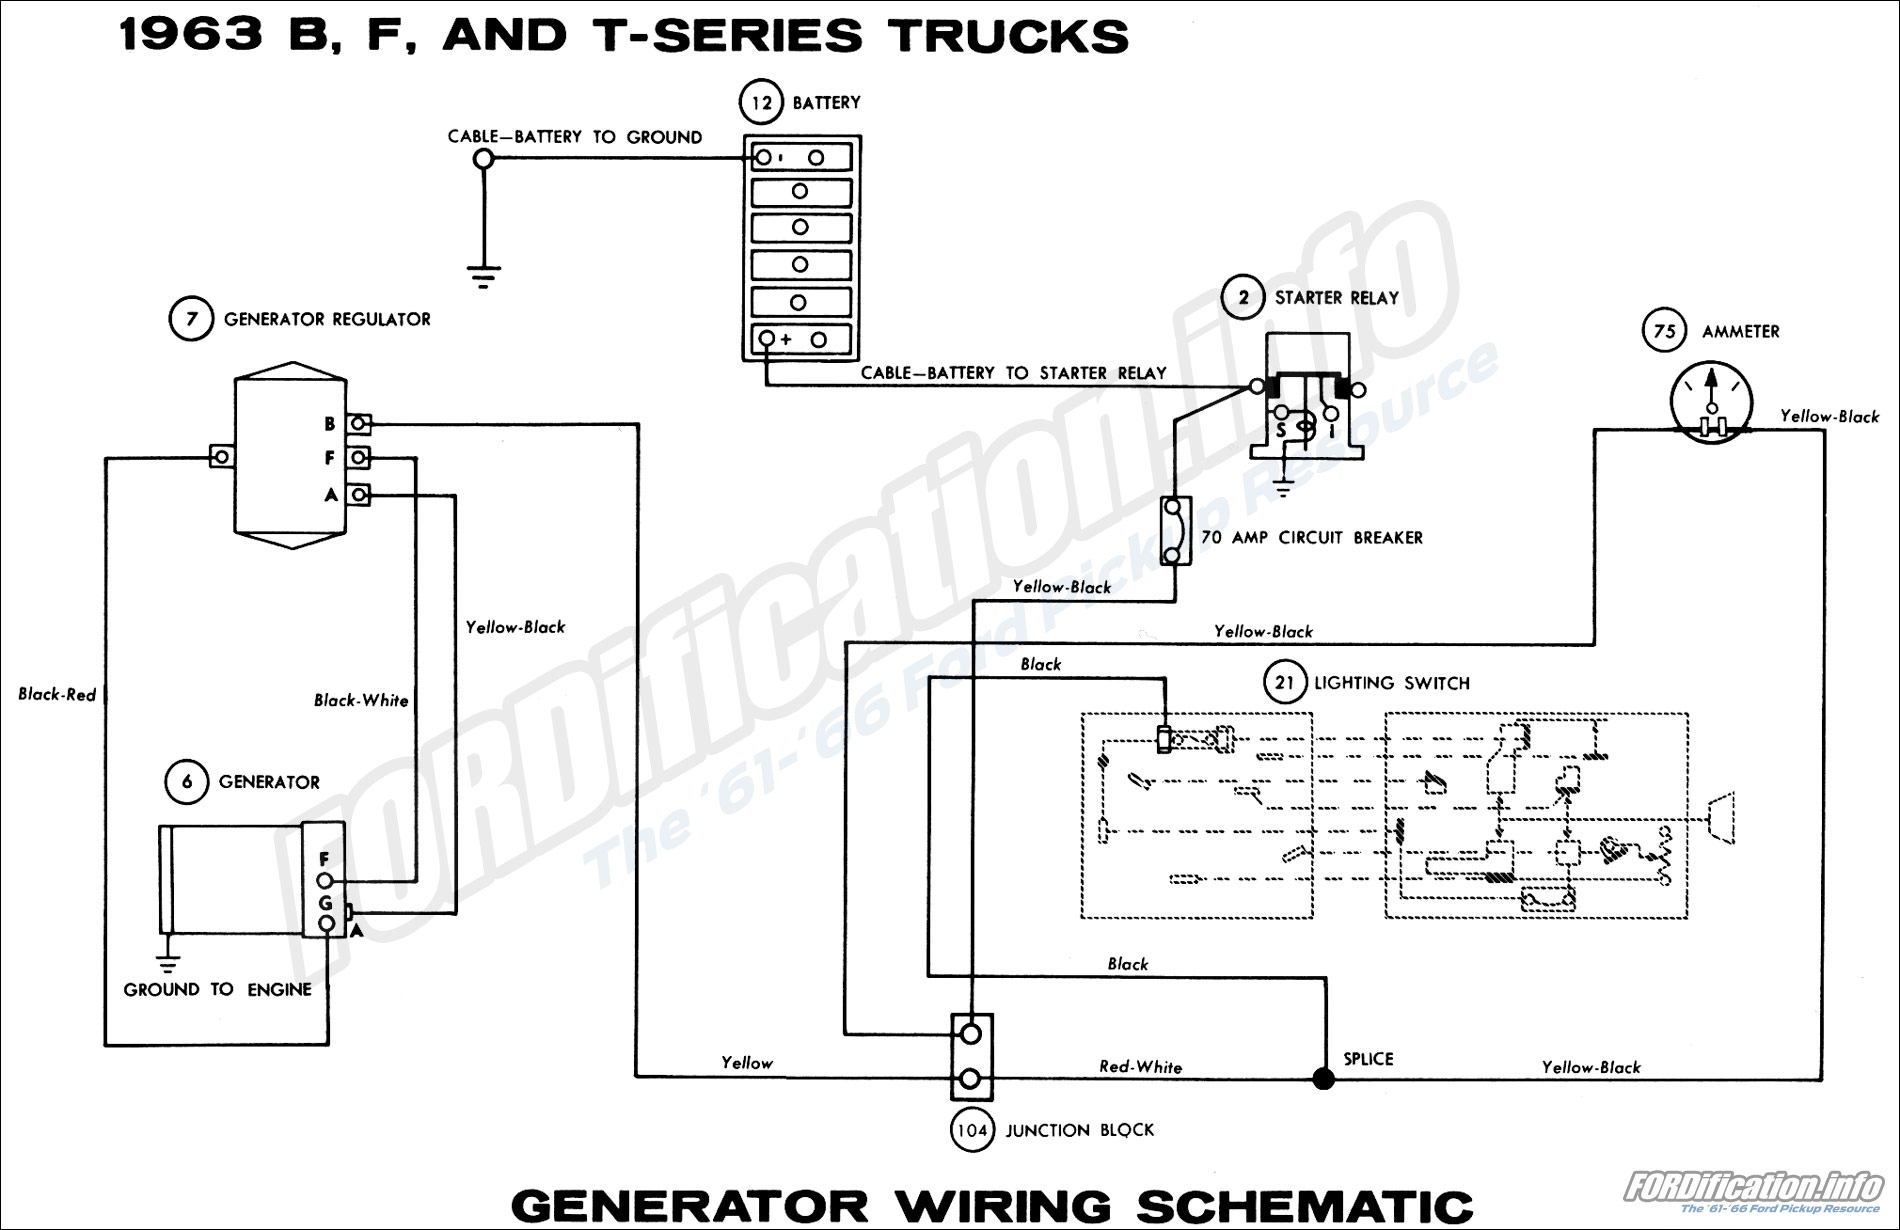 1963 b, f, and t-series trucks generator wiring schematic